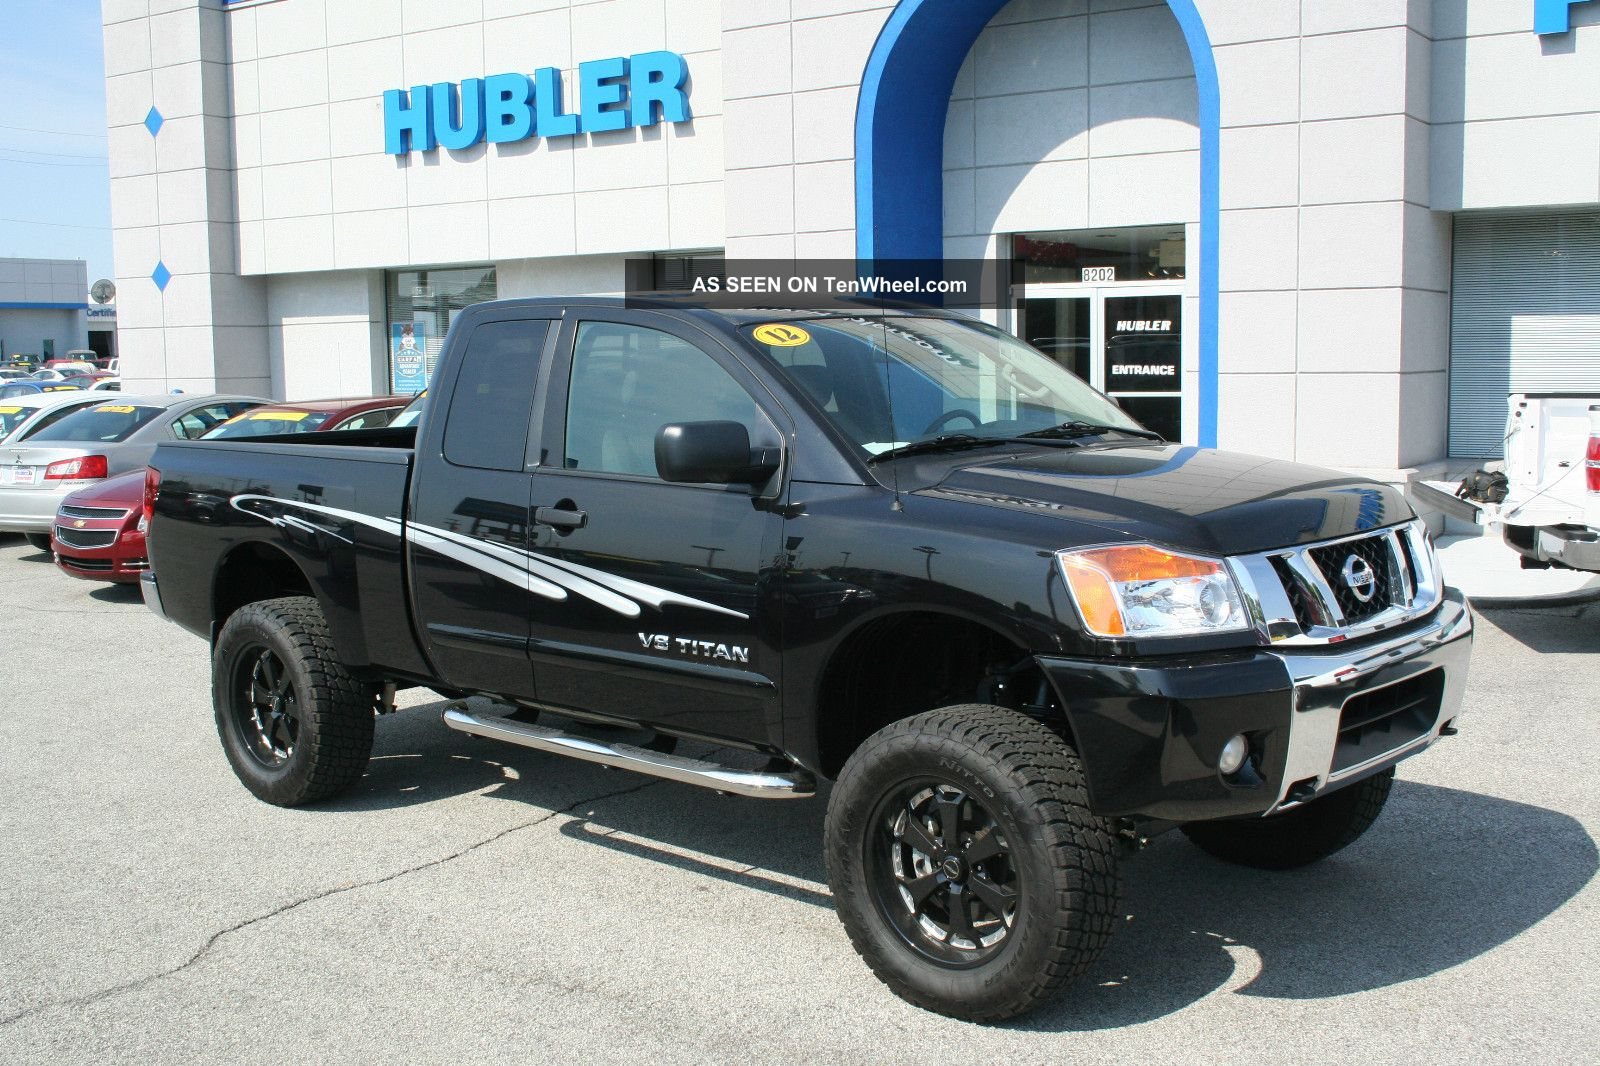 2012 nissan titan 4wd king cab 5 6l 8cyl sv. Black Bedroom Furniture Sets. Home Design Ideas